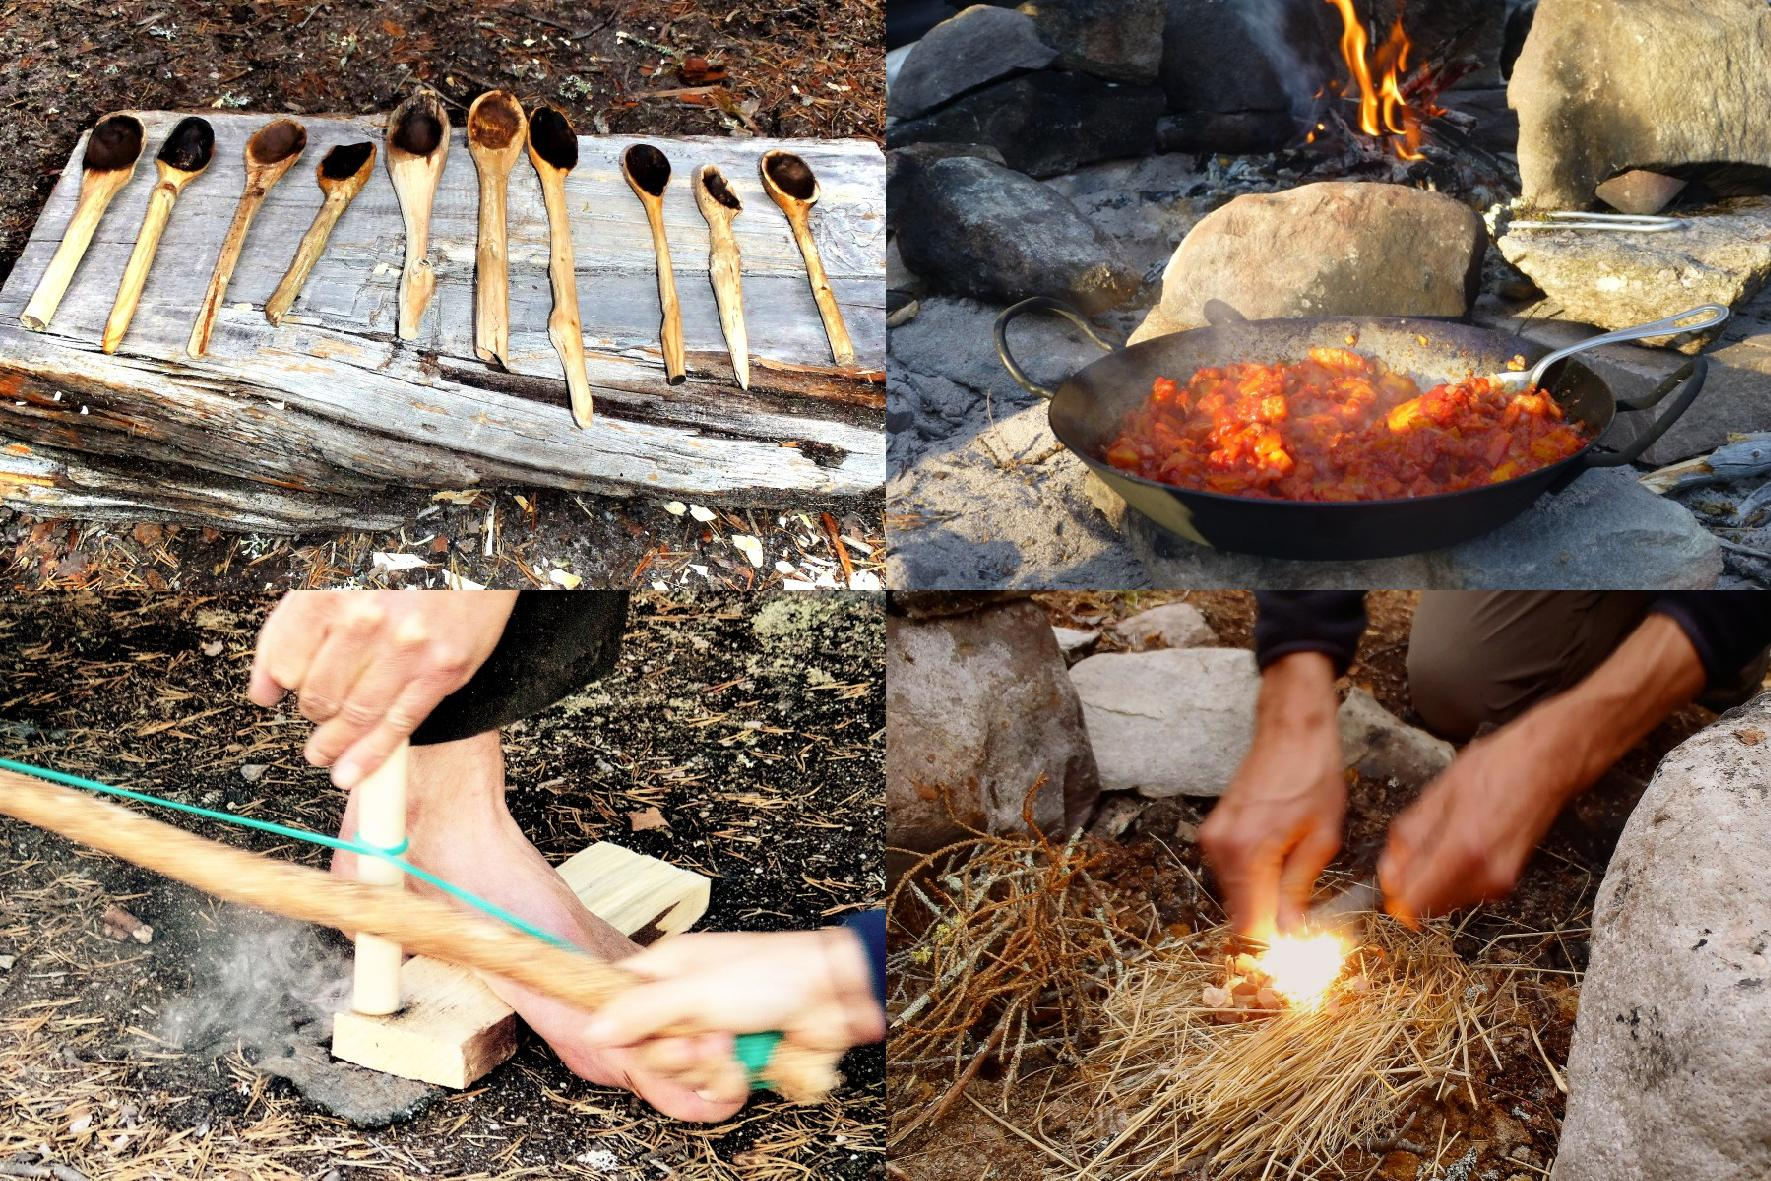 Wilderness course: wilderness living skills - bushcraft (picture)